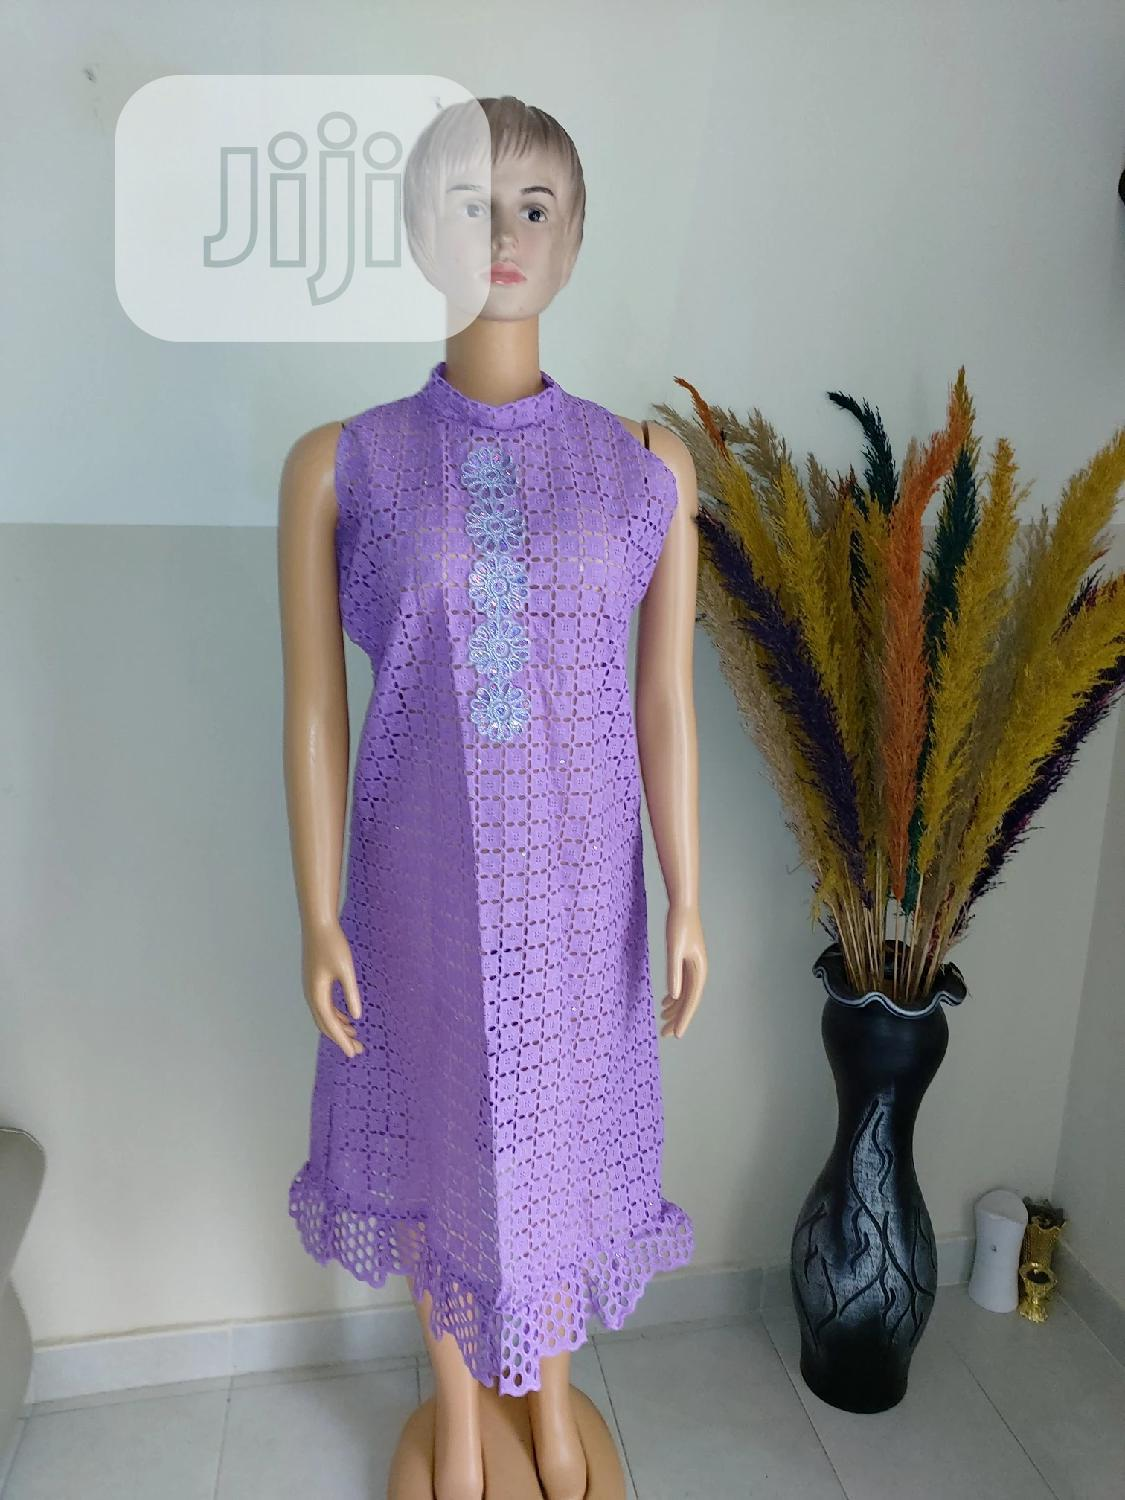 Archive: Tamaar's Stitches Gown